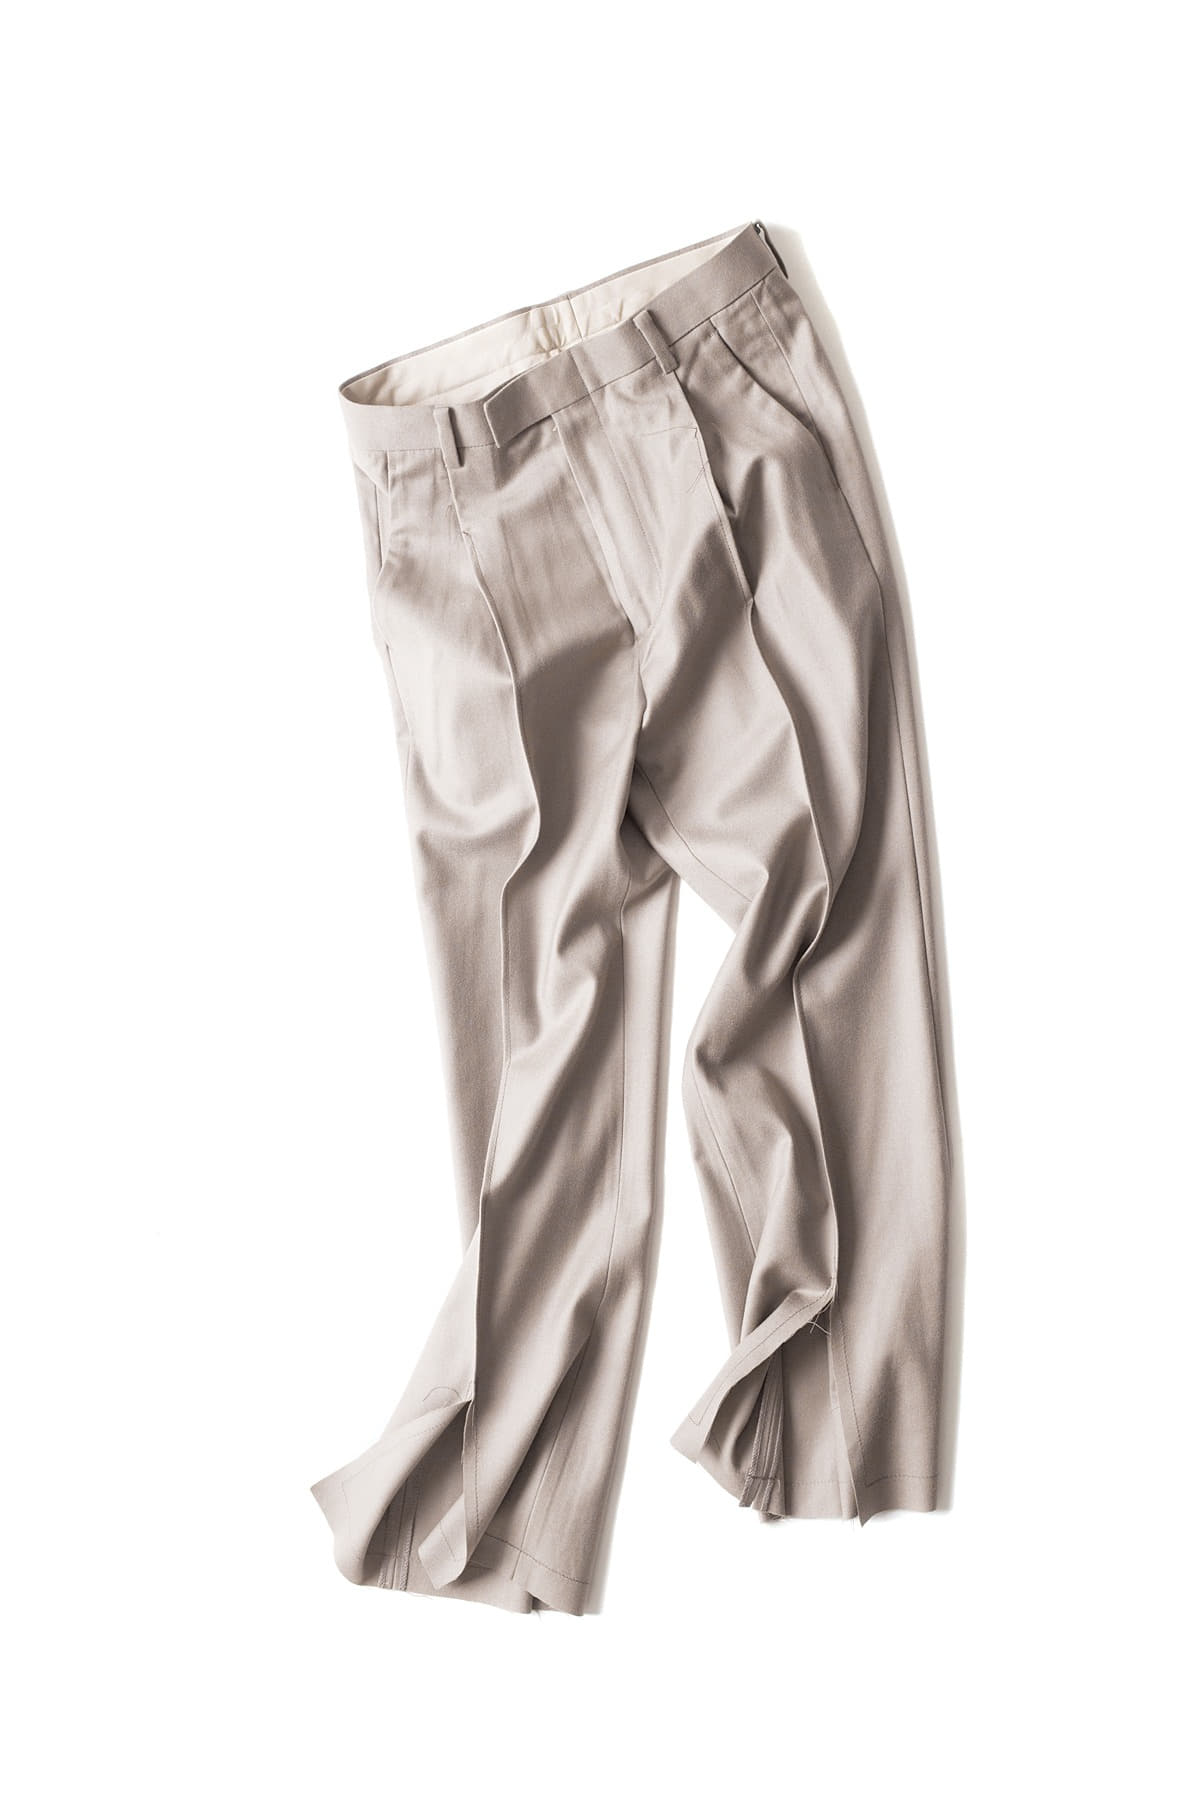 Ooparts : Center Slit Wool Pants (Mushroom)